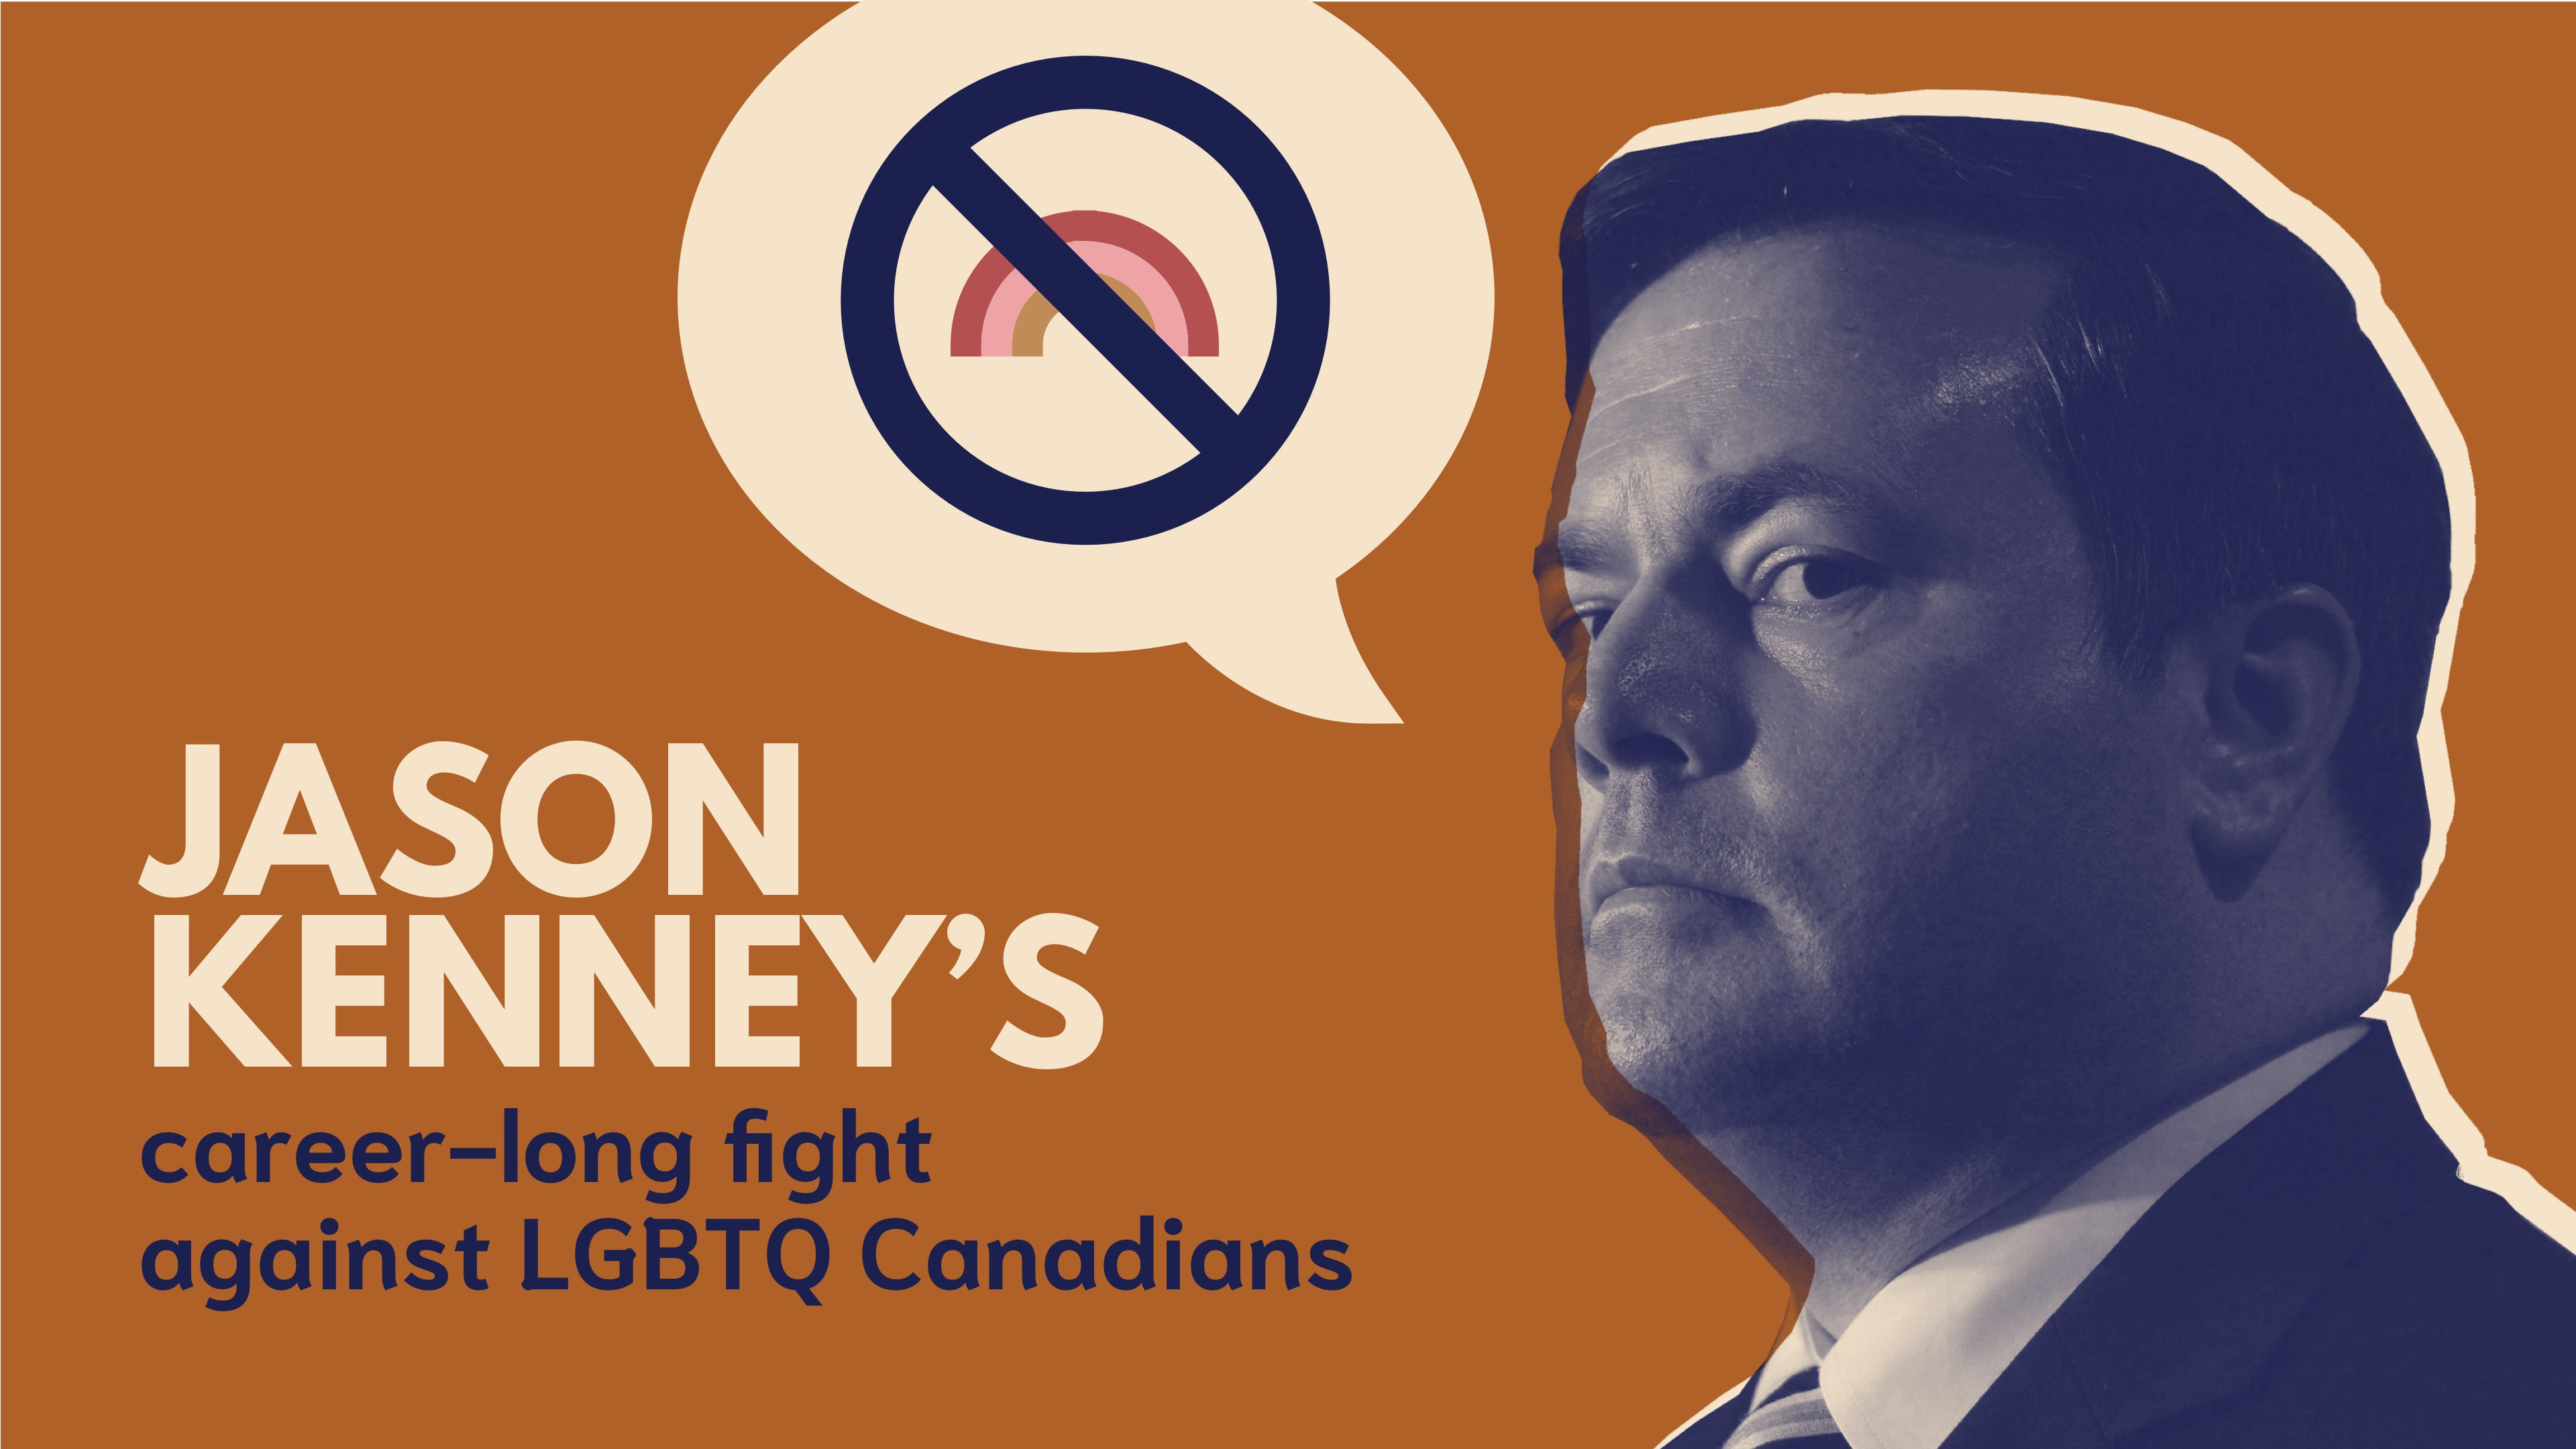 Alberta's United Conservative Party leader, Jason Kenney